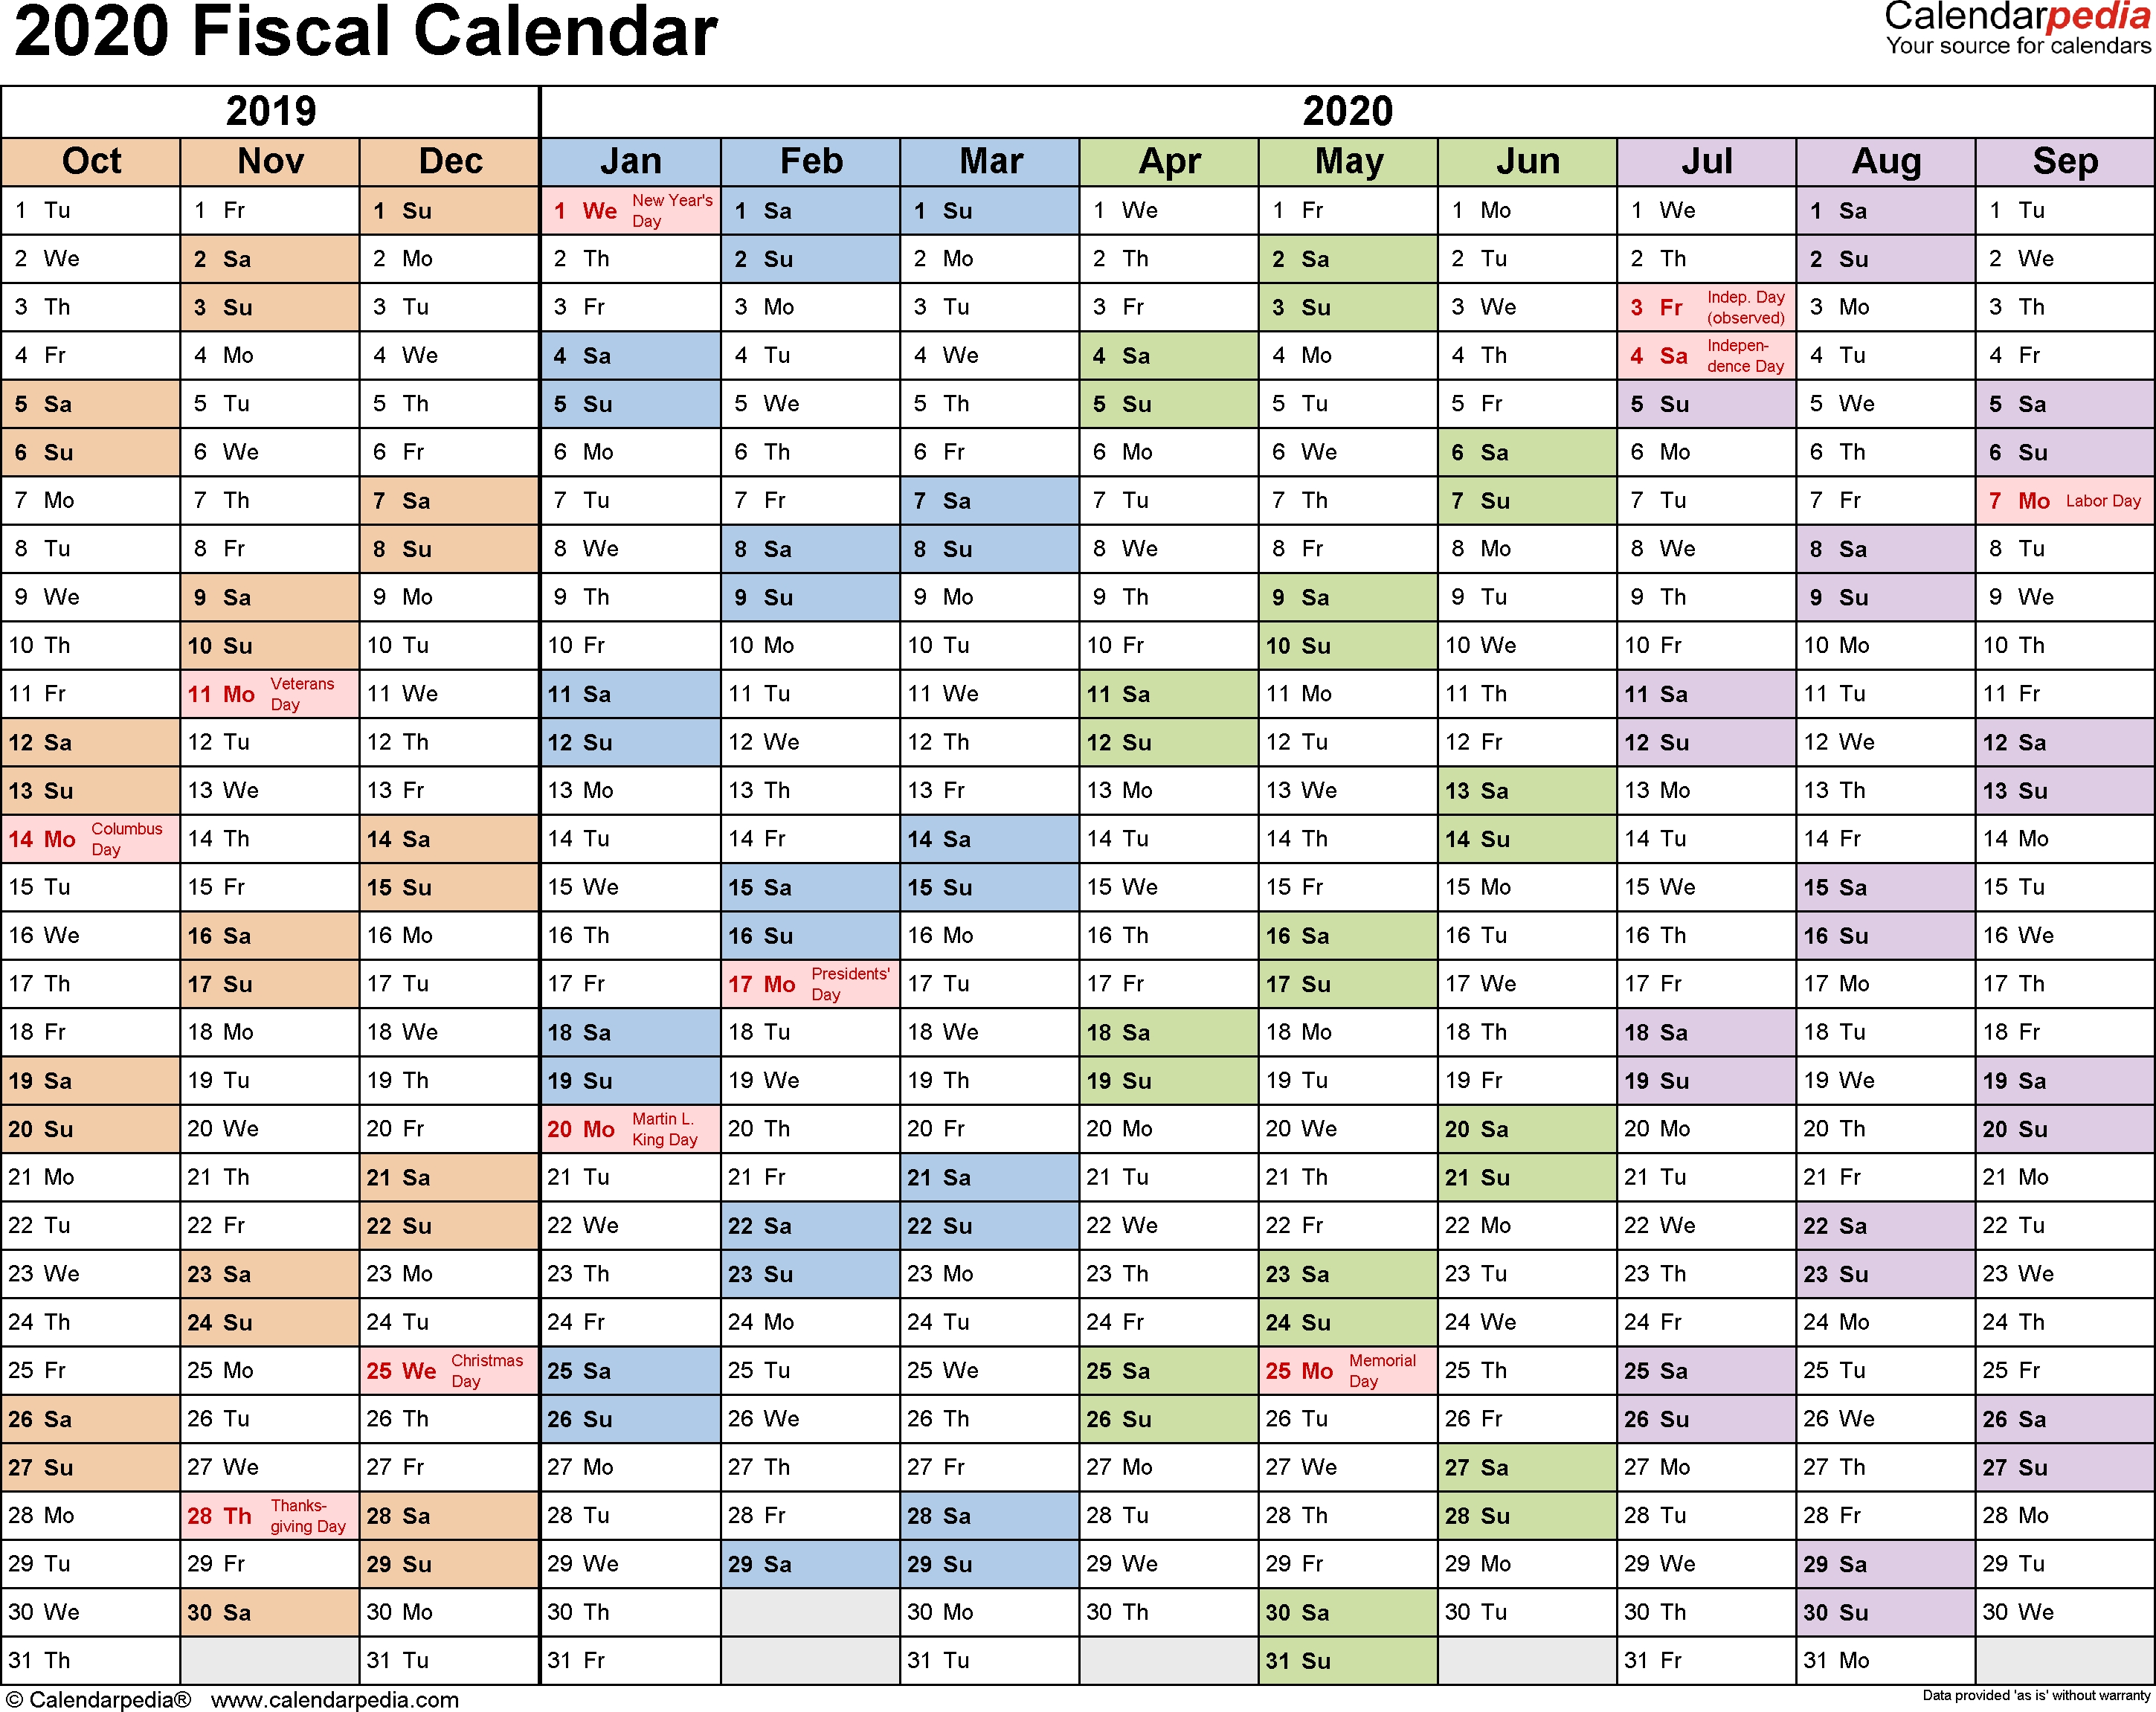 Fiscal Calendars 2020 As Free Printable Word Templates_Blank Quarterly Calendar 2020